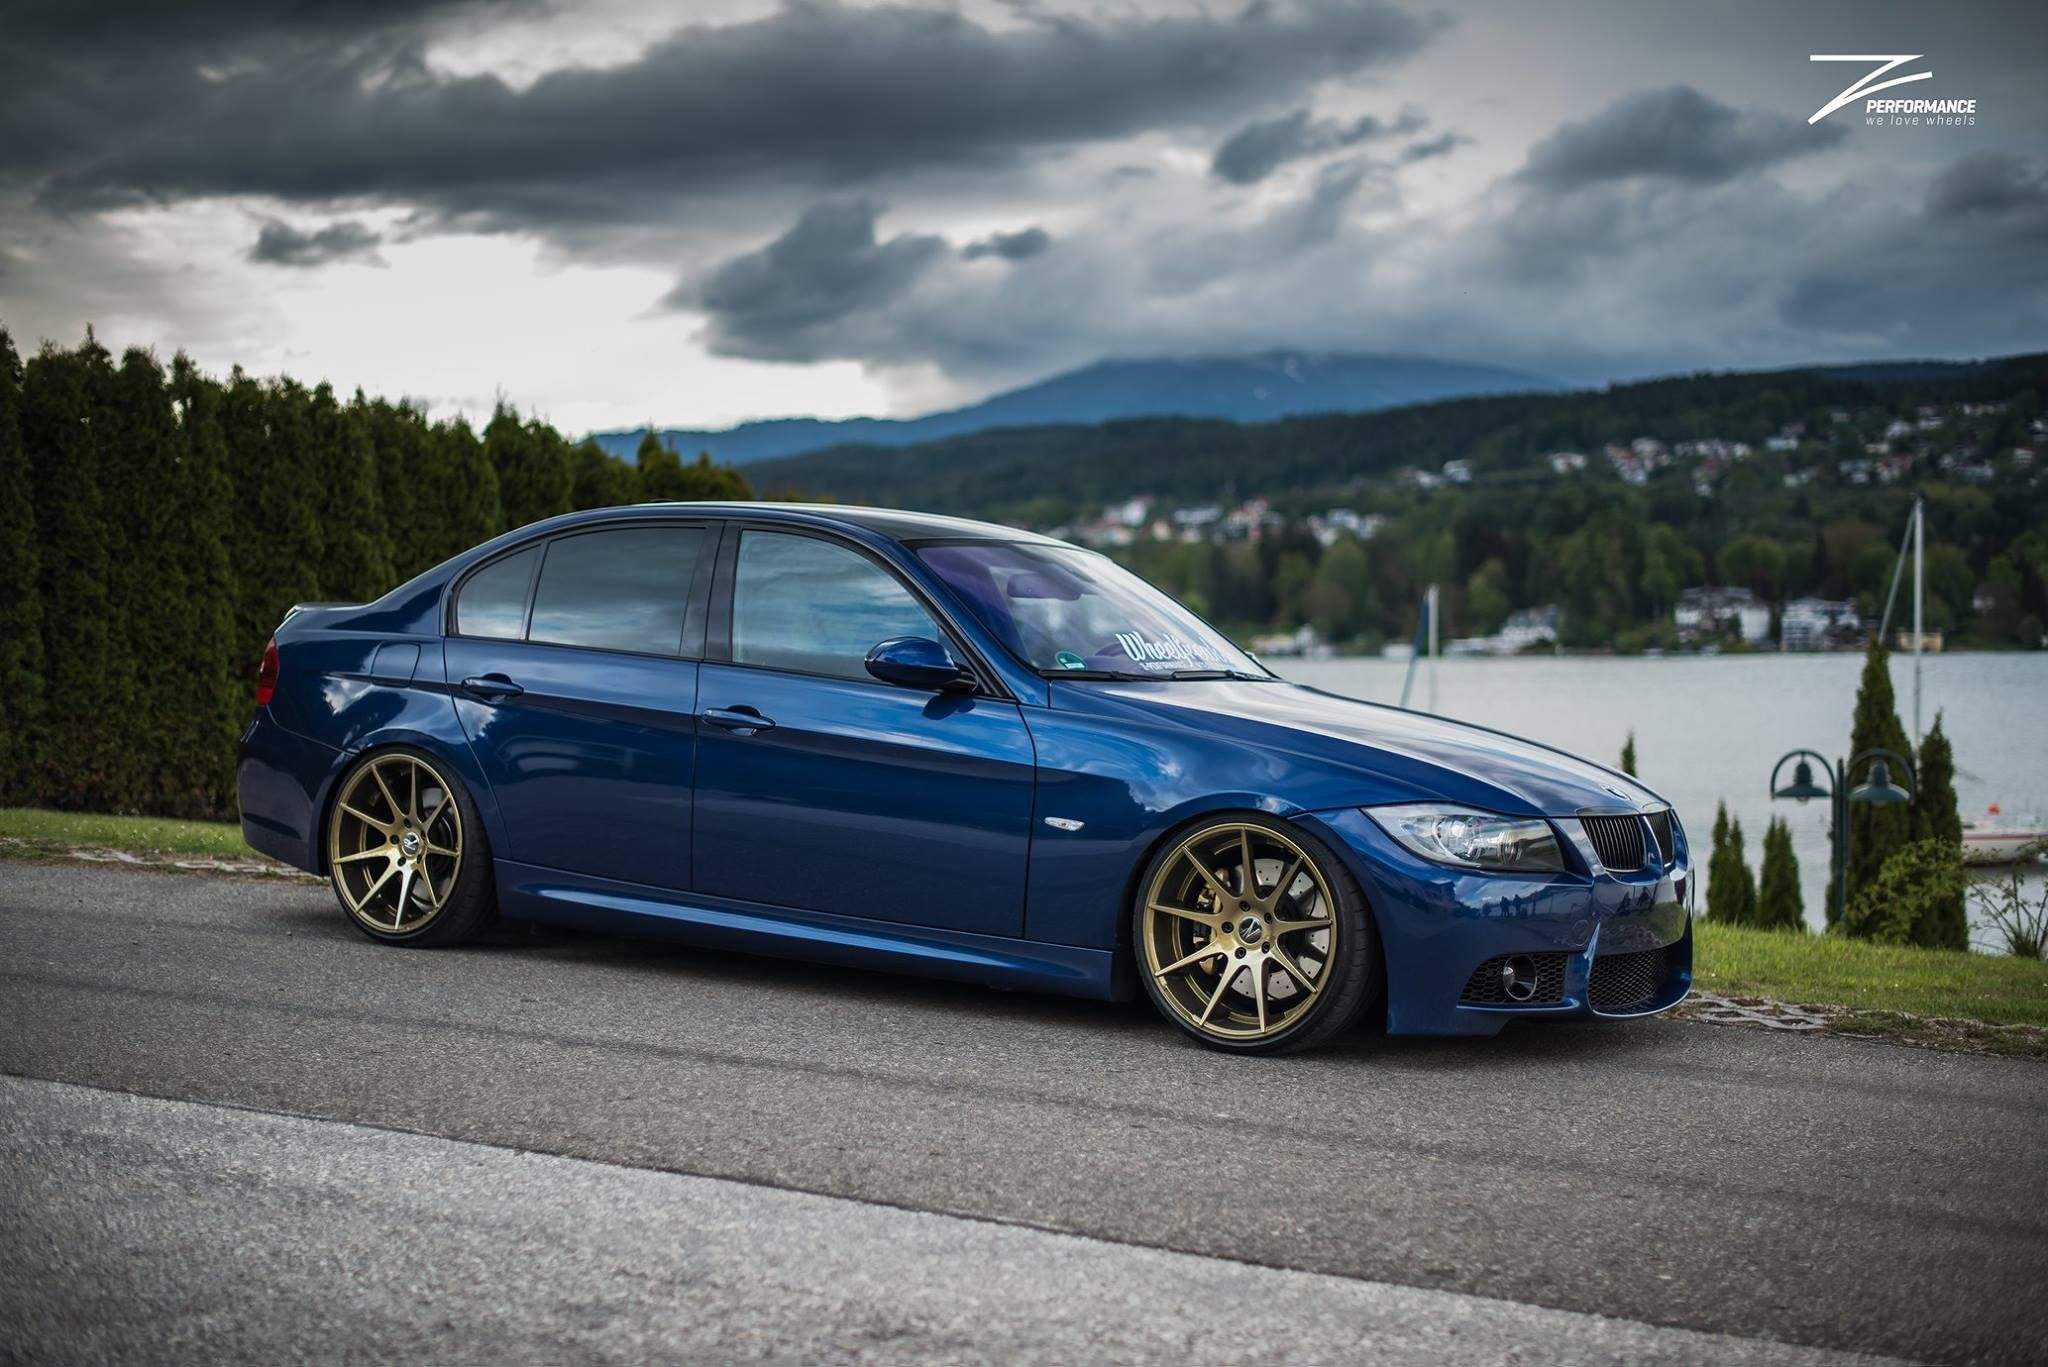 small resolution of  bmw e90 335i sedan xdrive mpackage blue provocative eyes sexy hot badass live l fe love follow your heart bmwlife